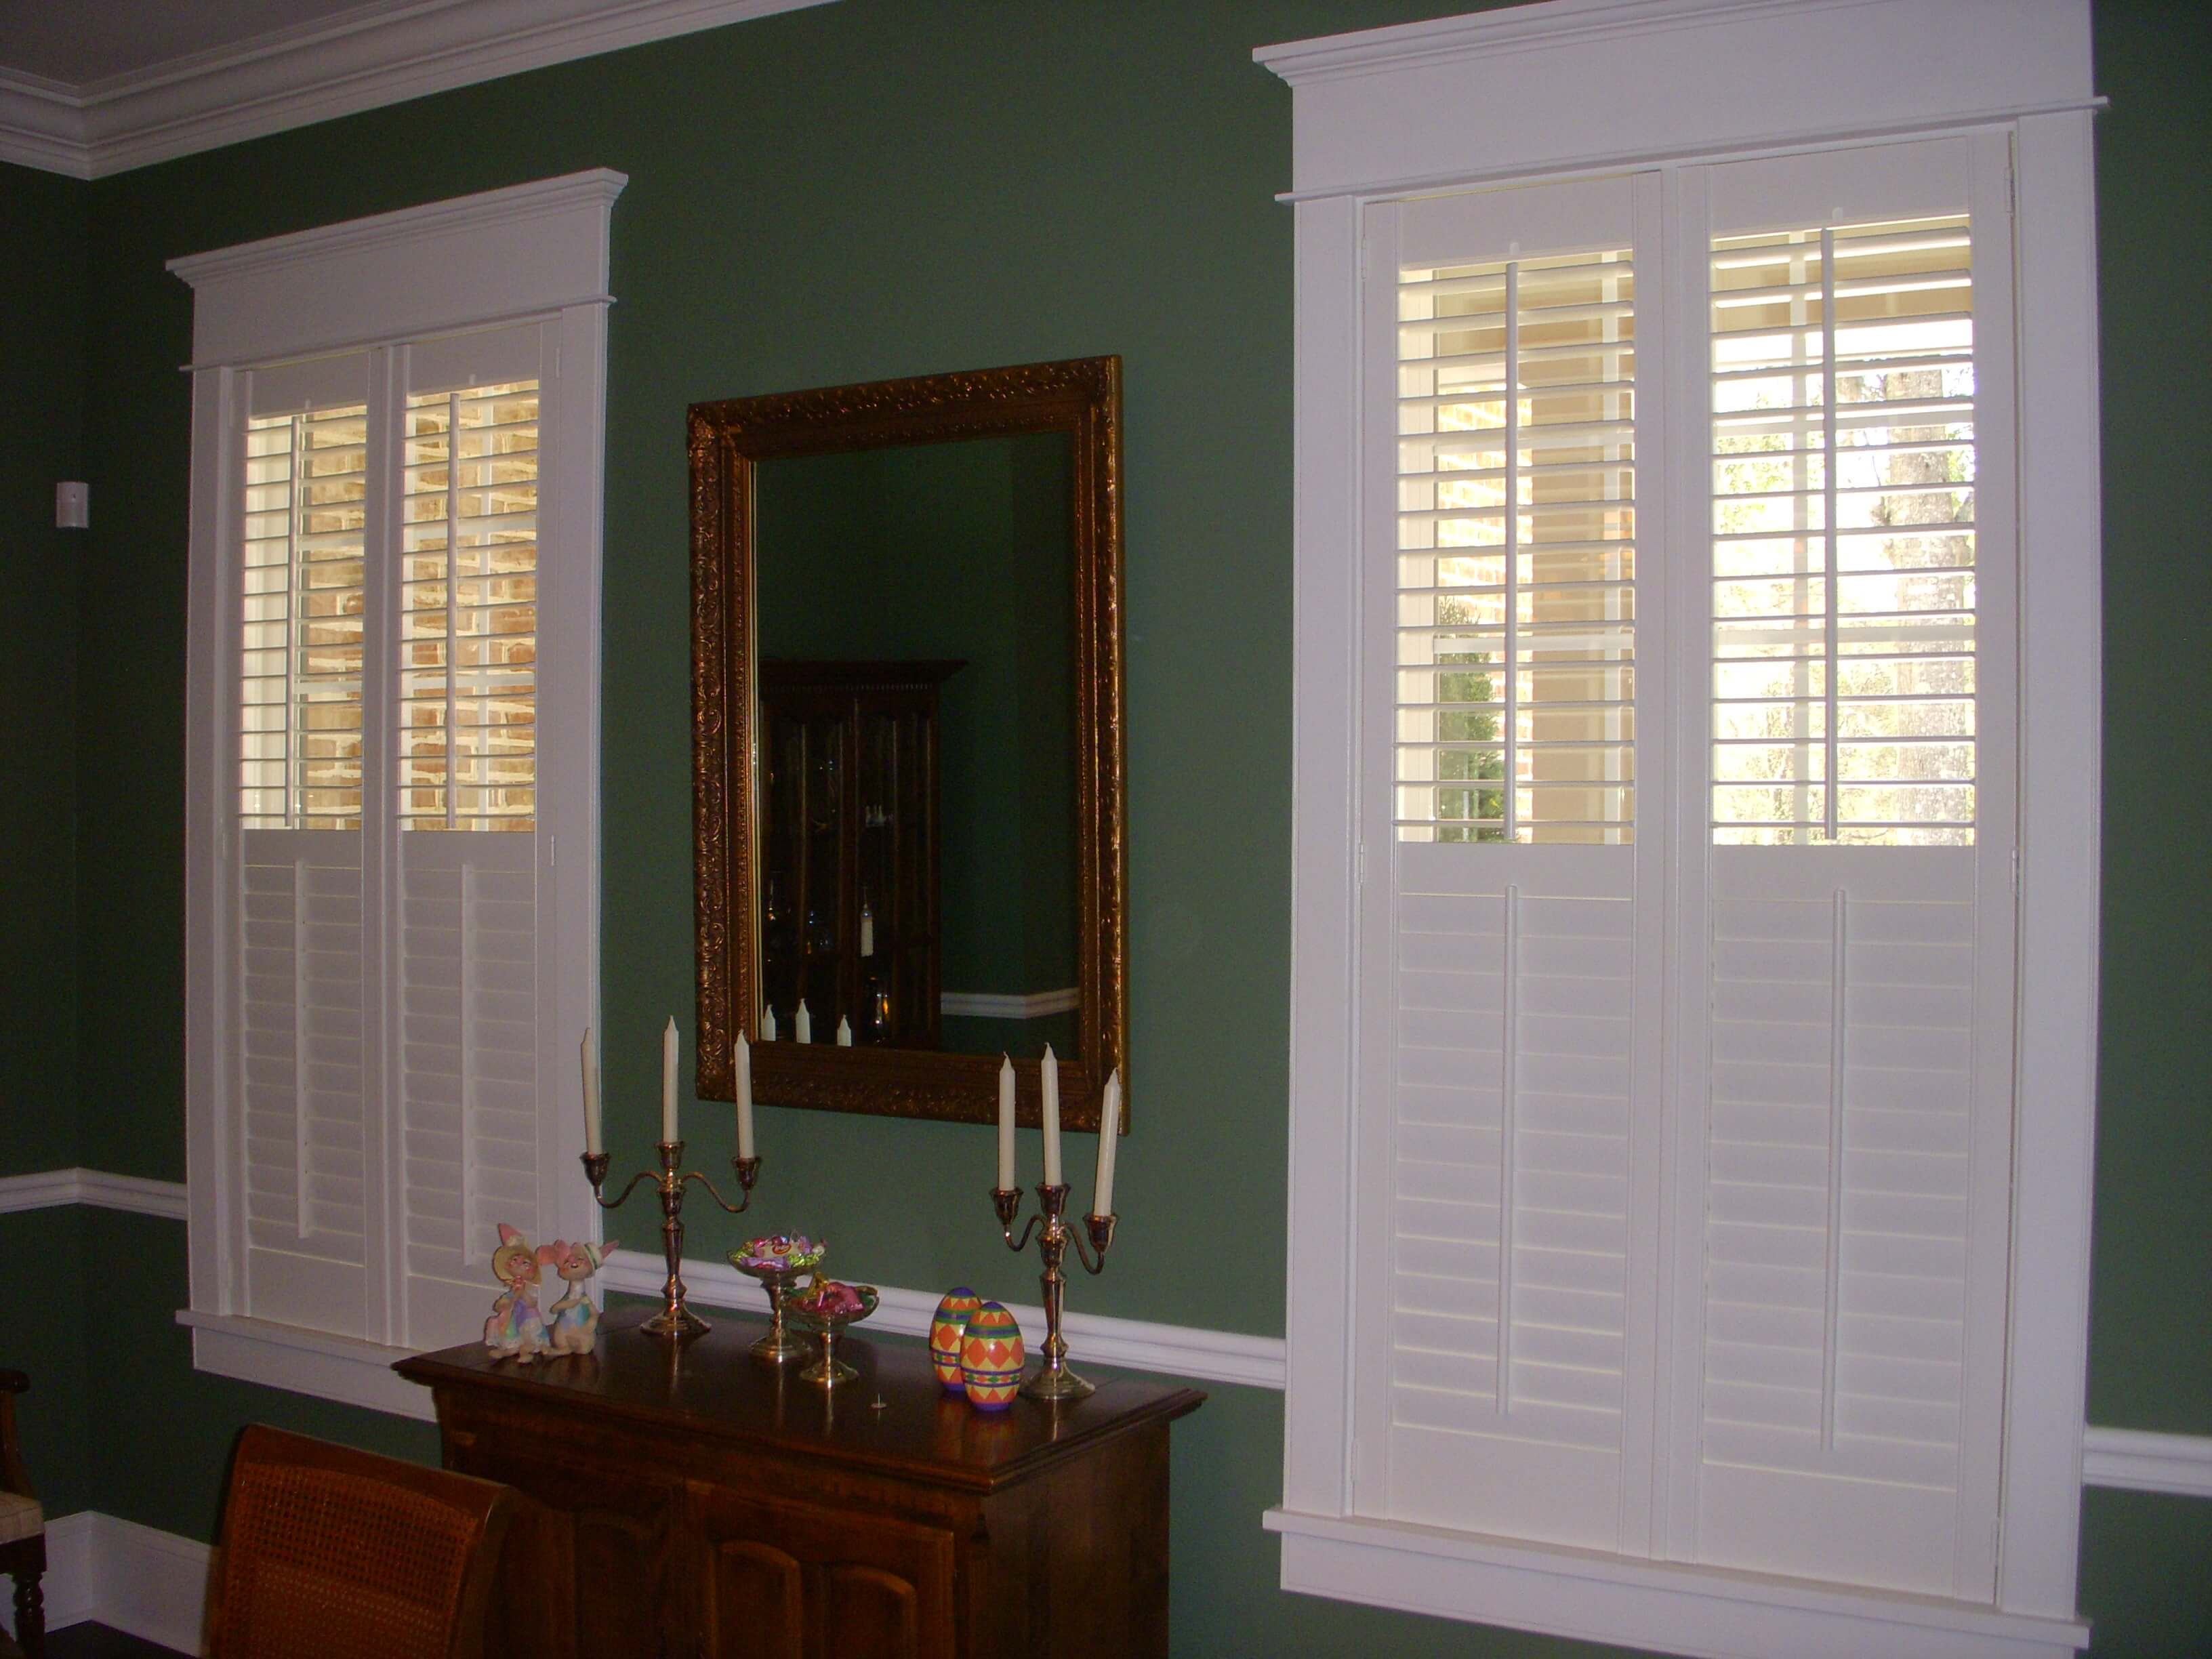 Suncatcher Shutters Blinds Shades Statesboro Savannah Ga